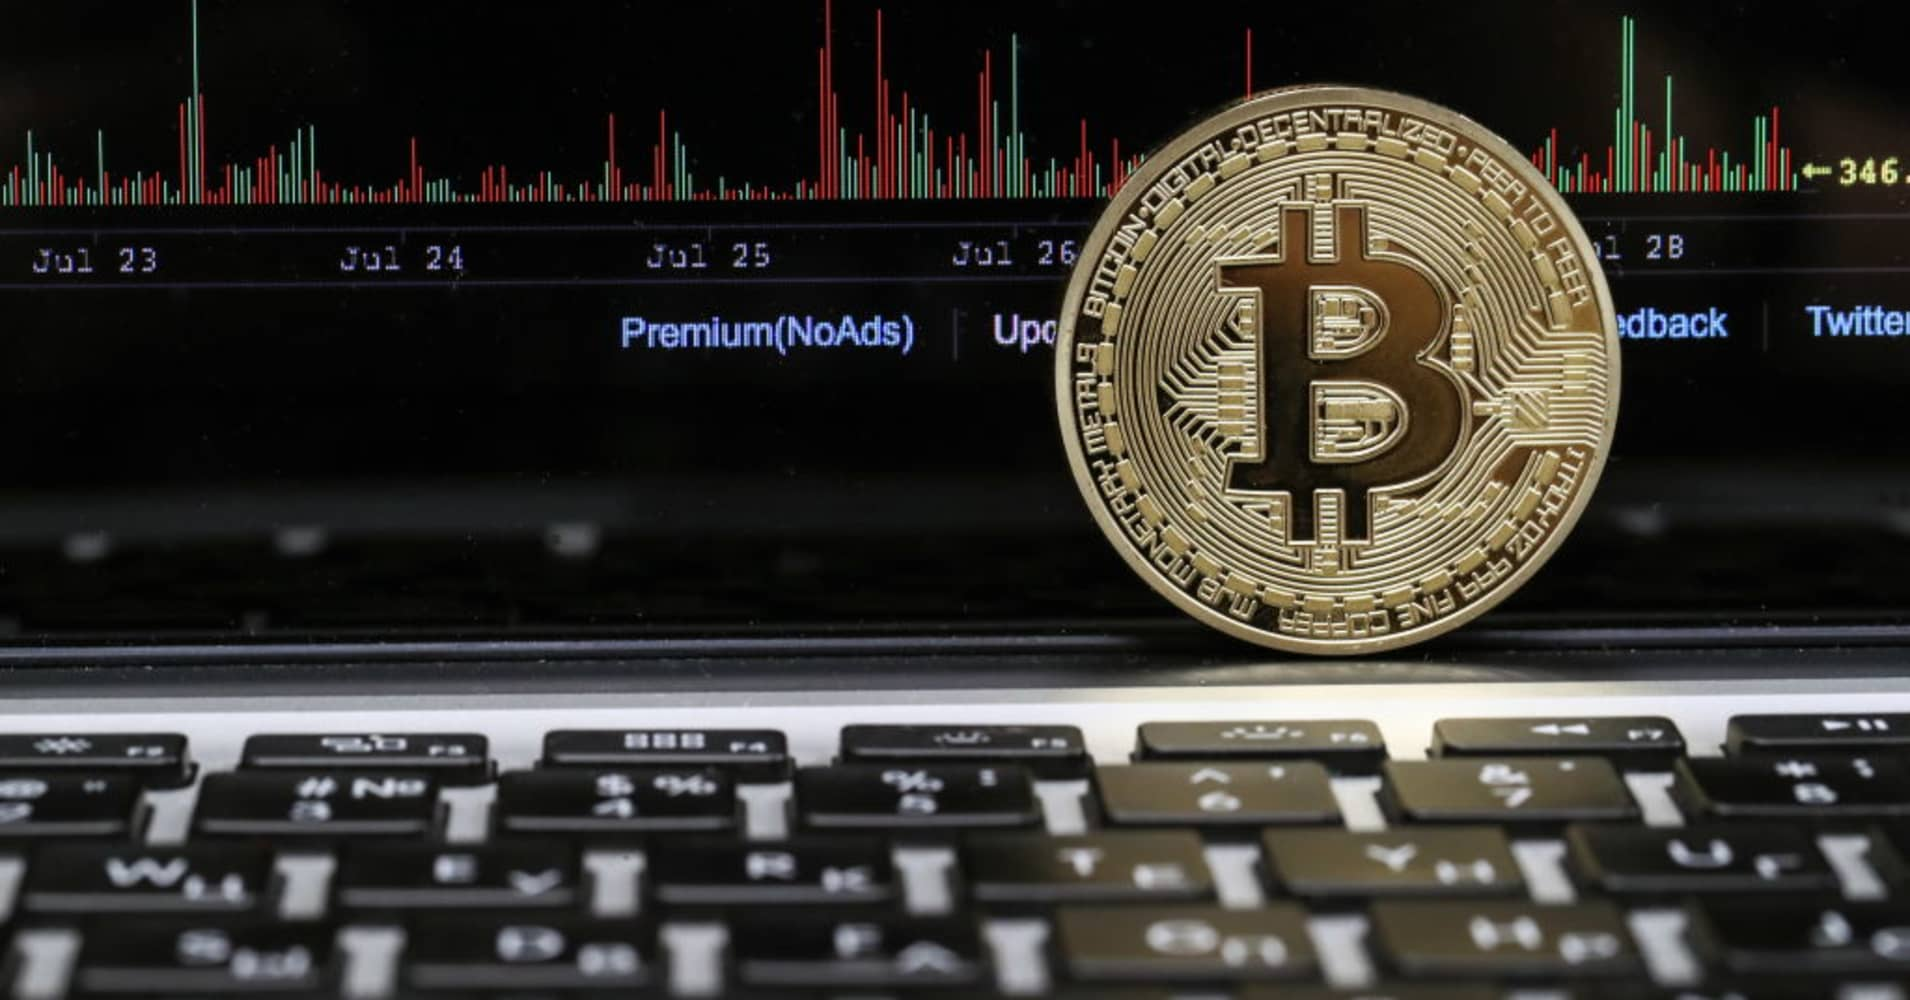 Bitcoin bounced back, but prices could fall again, venture capitalist says